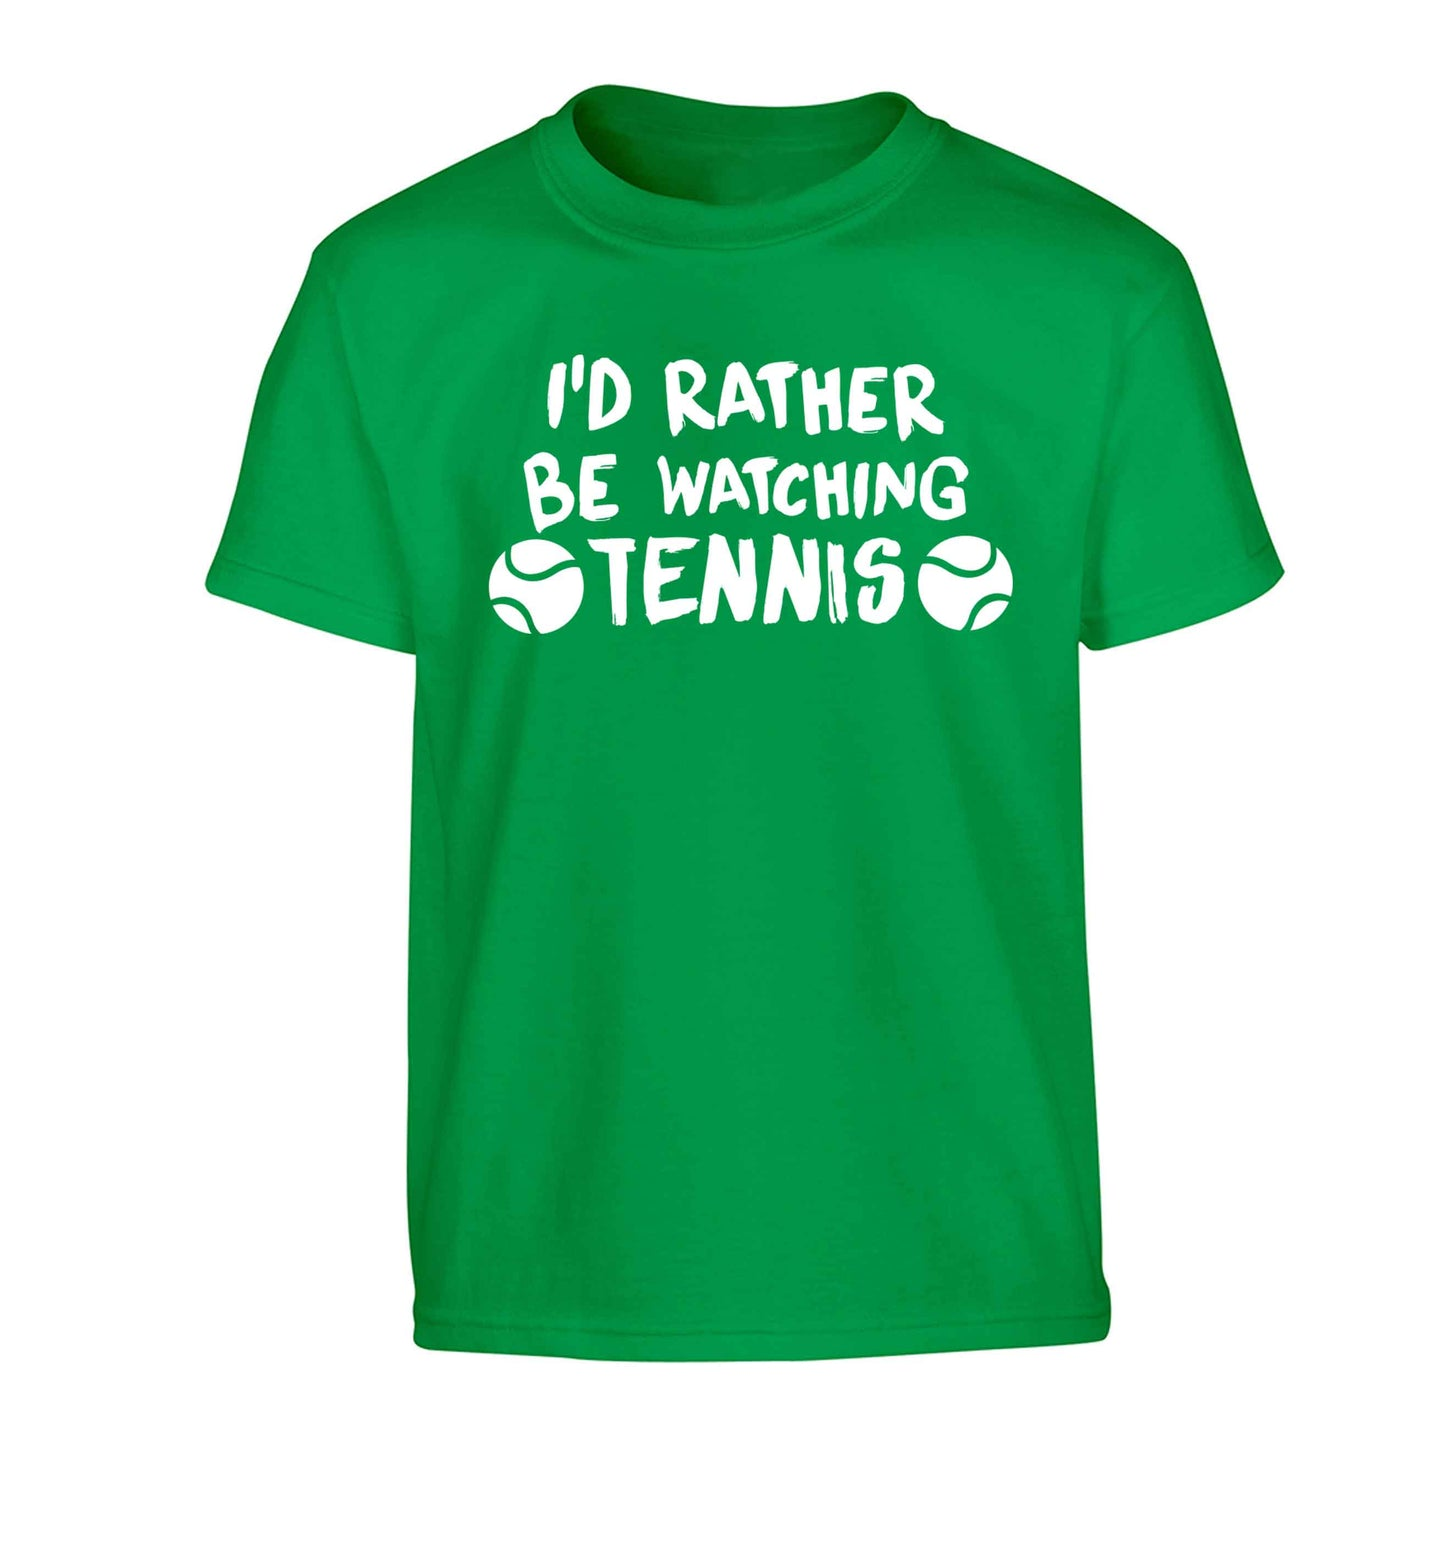 I'd rather be watching the tennis Children's green Tshirt 12-13 Years